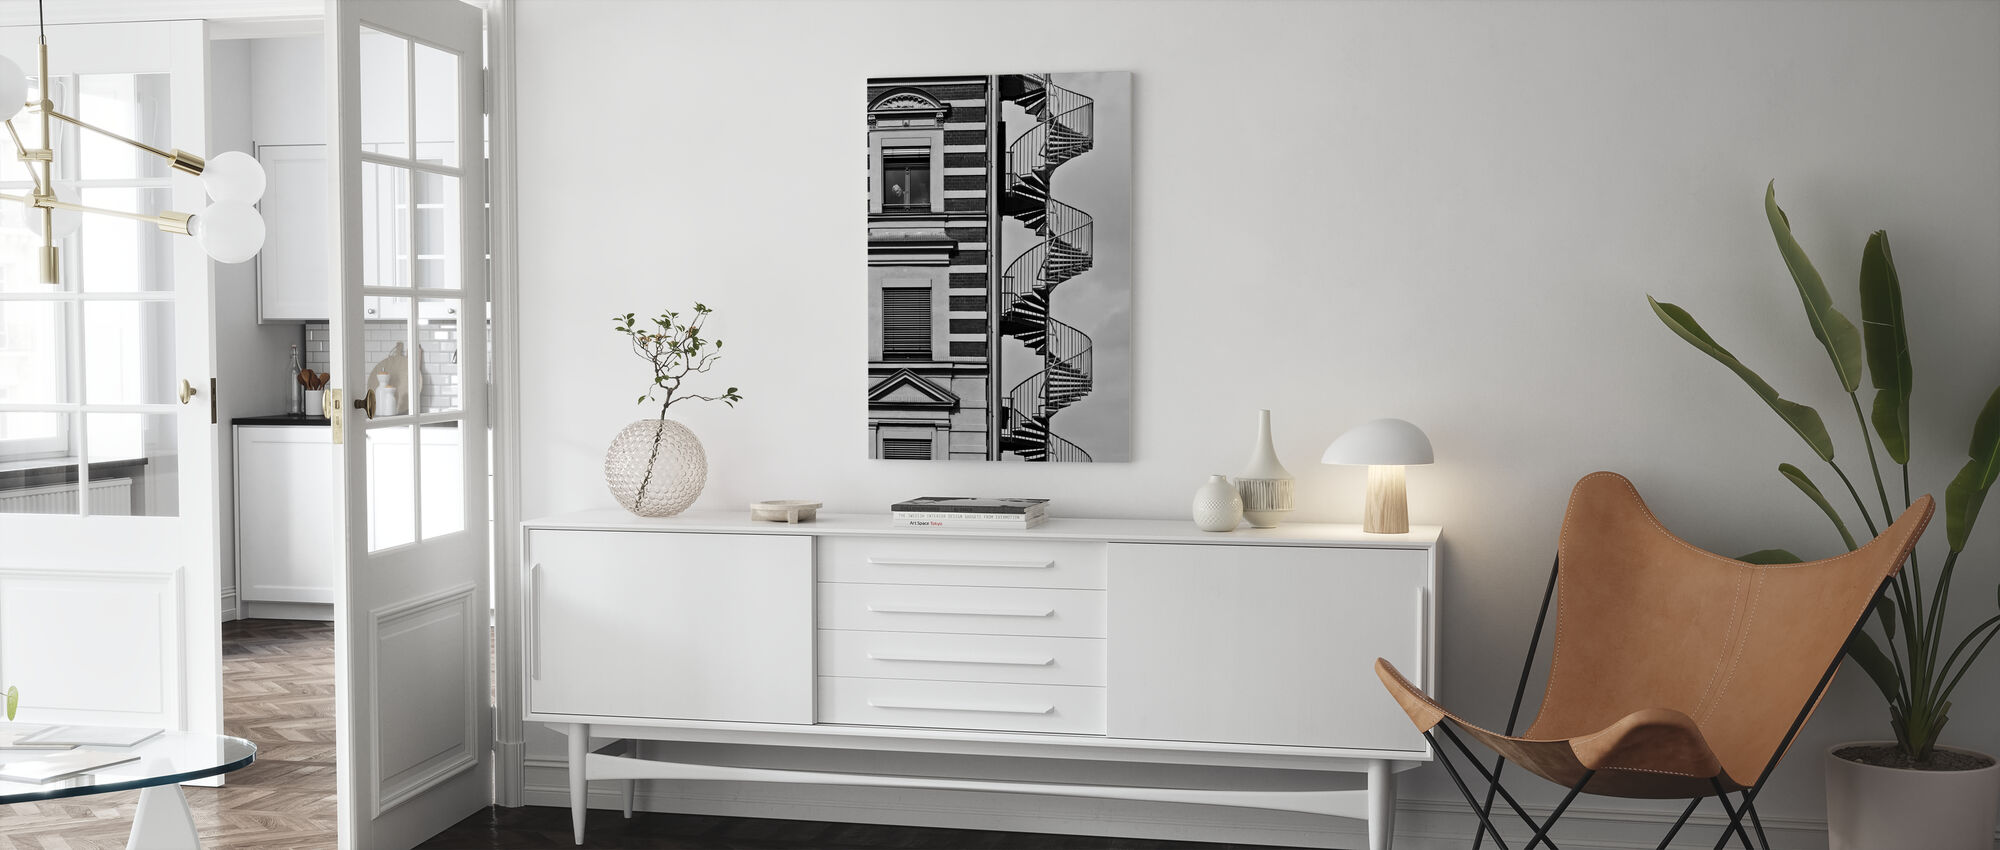 Lonely Man - Canvas print - Living Room